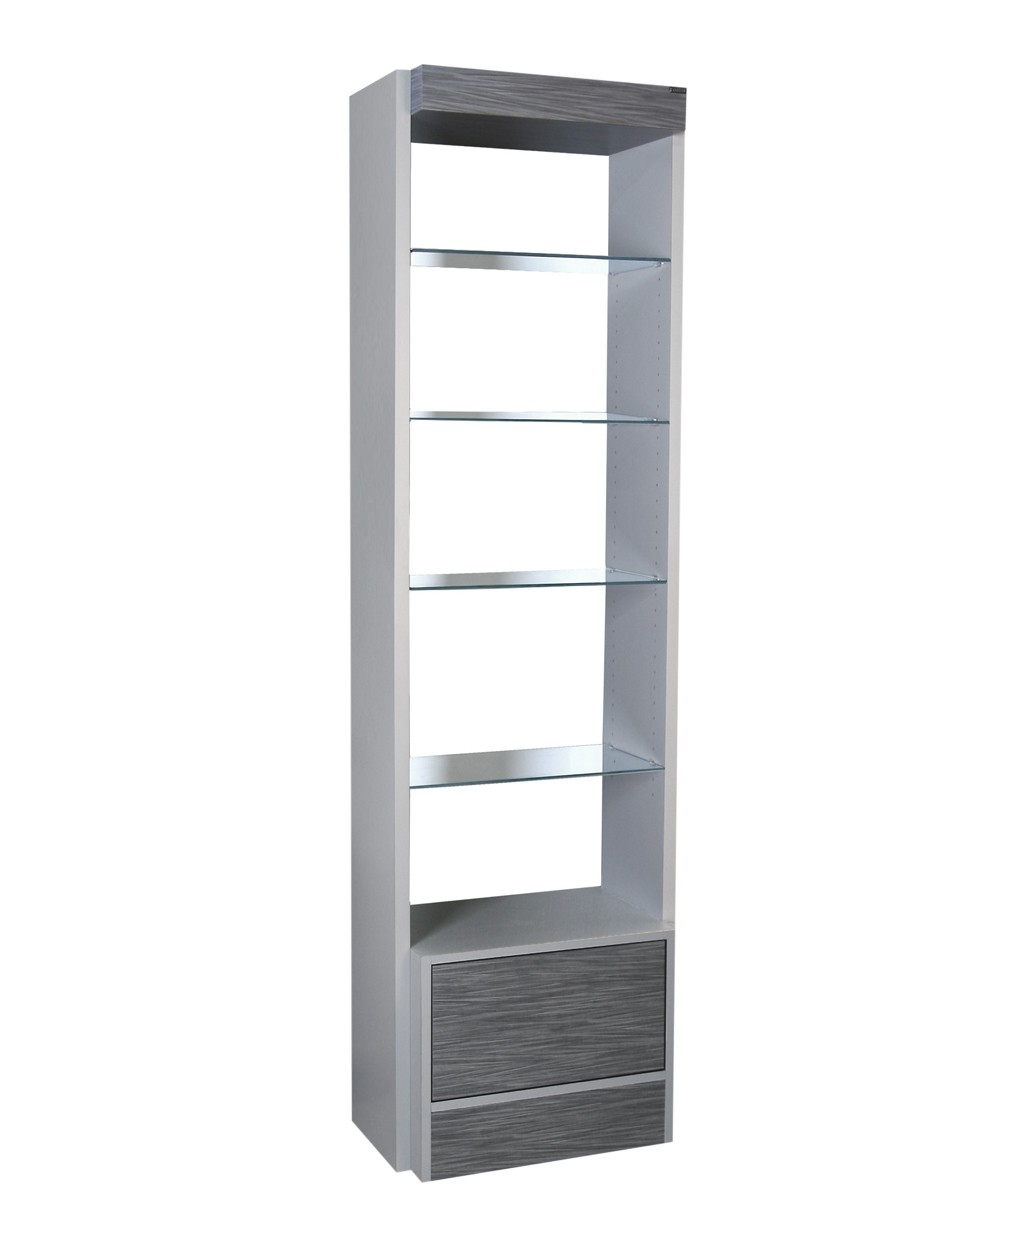 6629-24 Edge Retail Display Unit